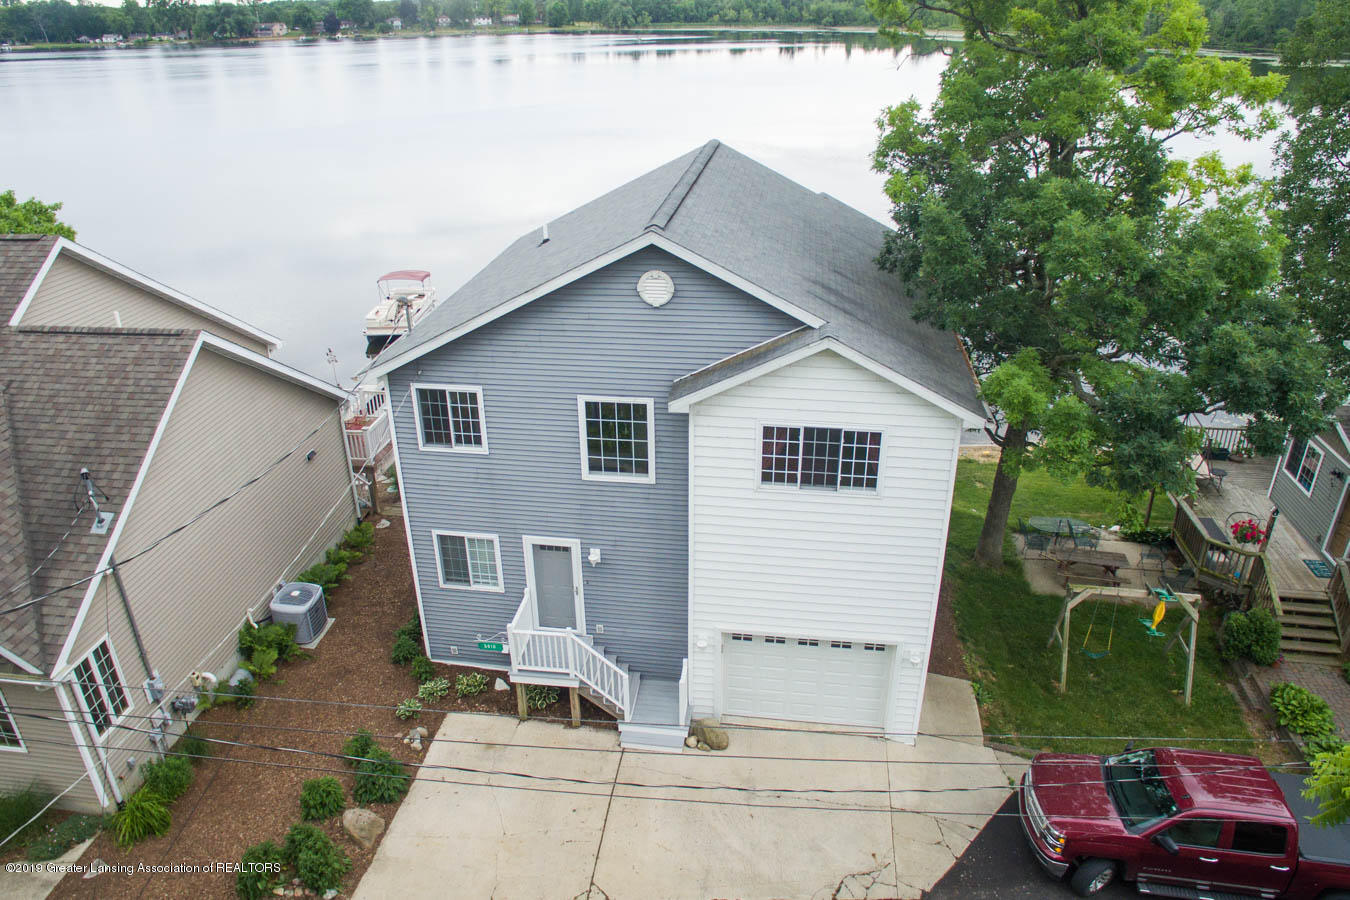 5910 Hickory Hill Dr - Aerial - Front View - 3